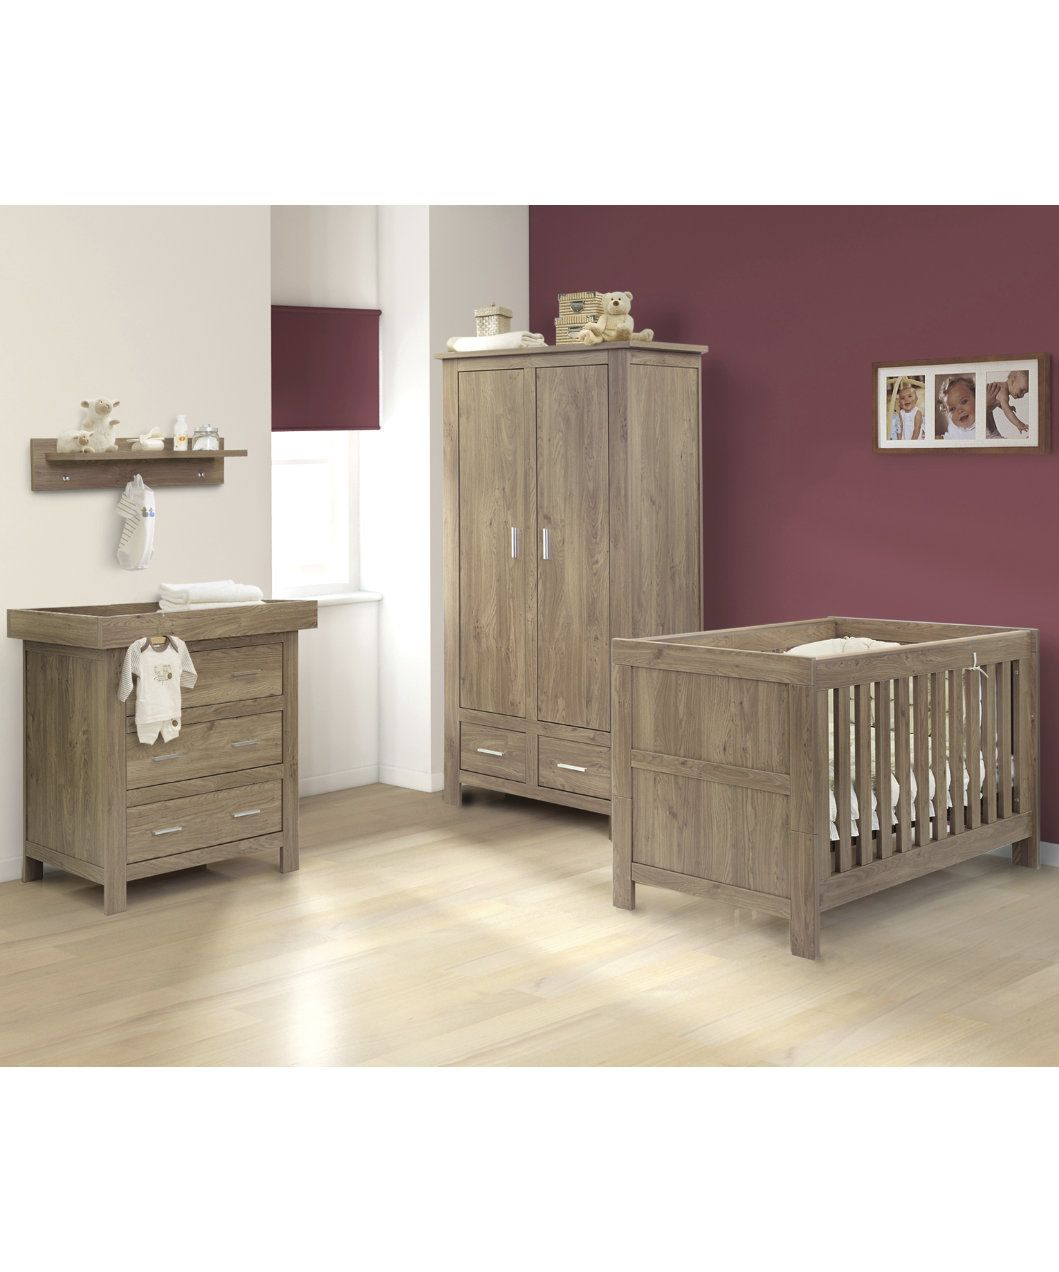 Babystyle Charnwood Houston 4 Piece Collection Oak Effect Nursery Furniture Sets M Nursery Furniture Sets Baby Furniture Sets Baby Bedroom Furniture Sets